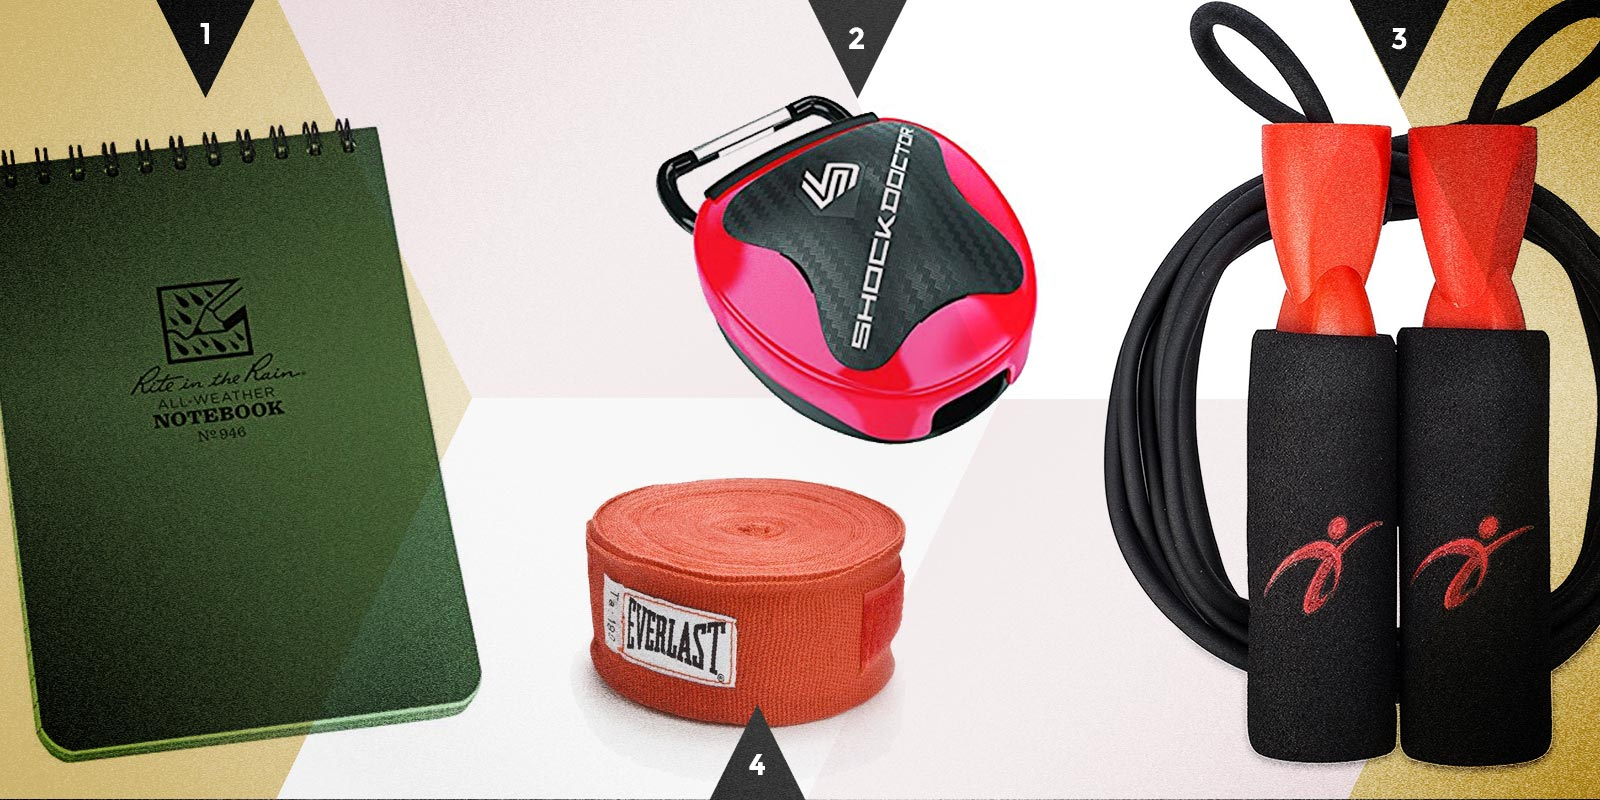 Autostraddle Gift Guide: Sports $5-$10 Range